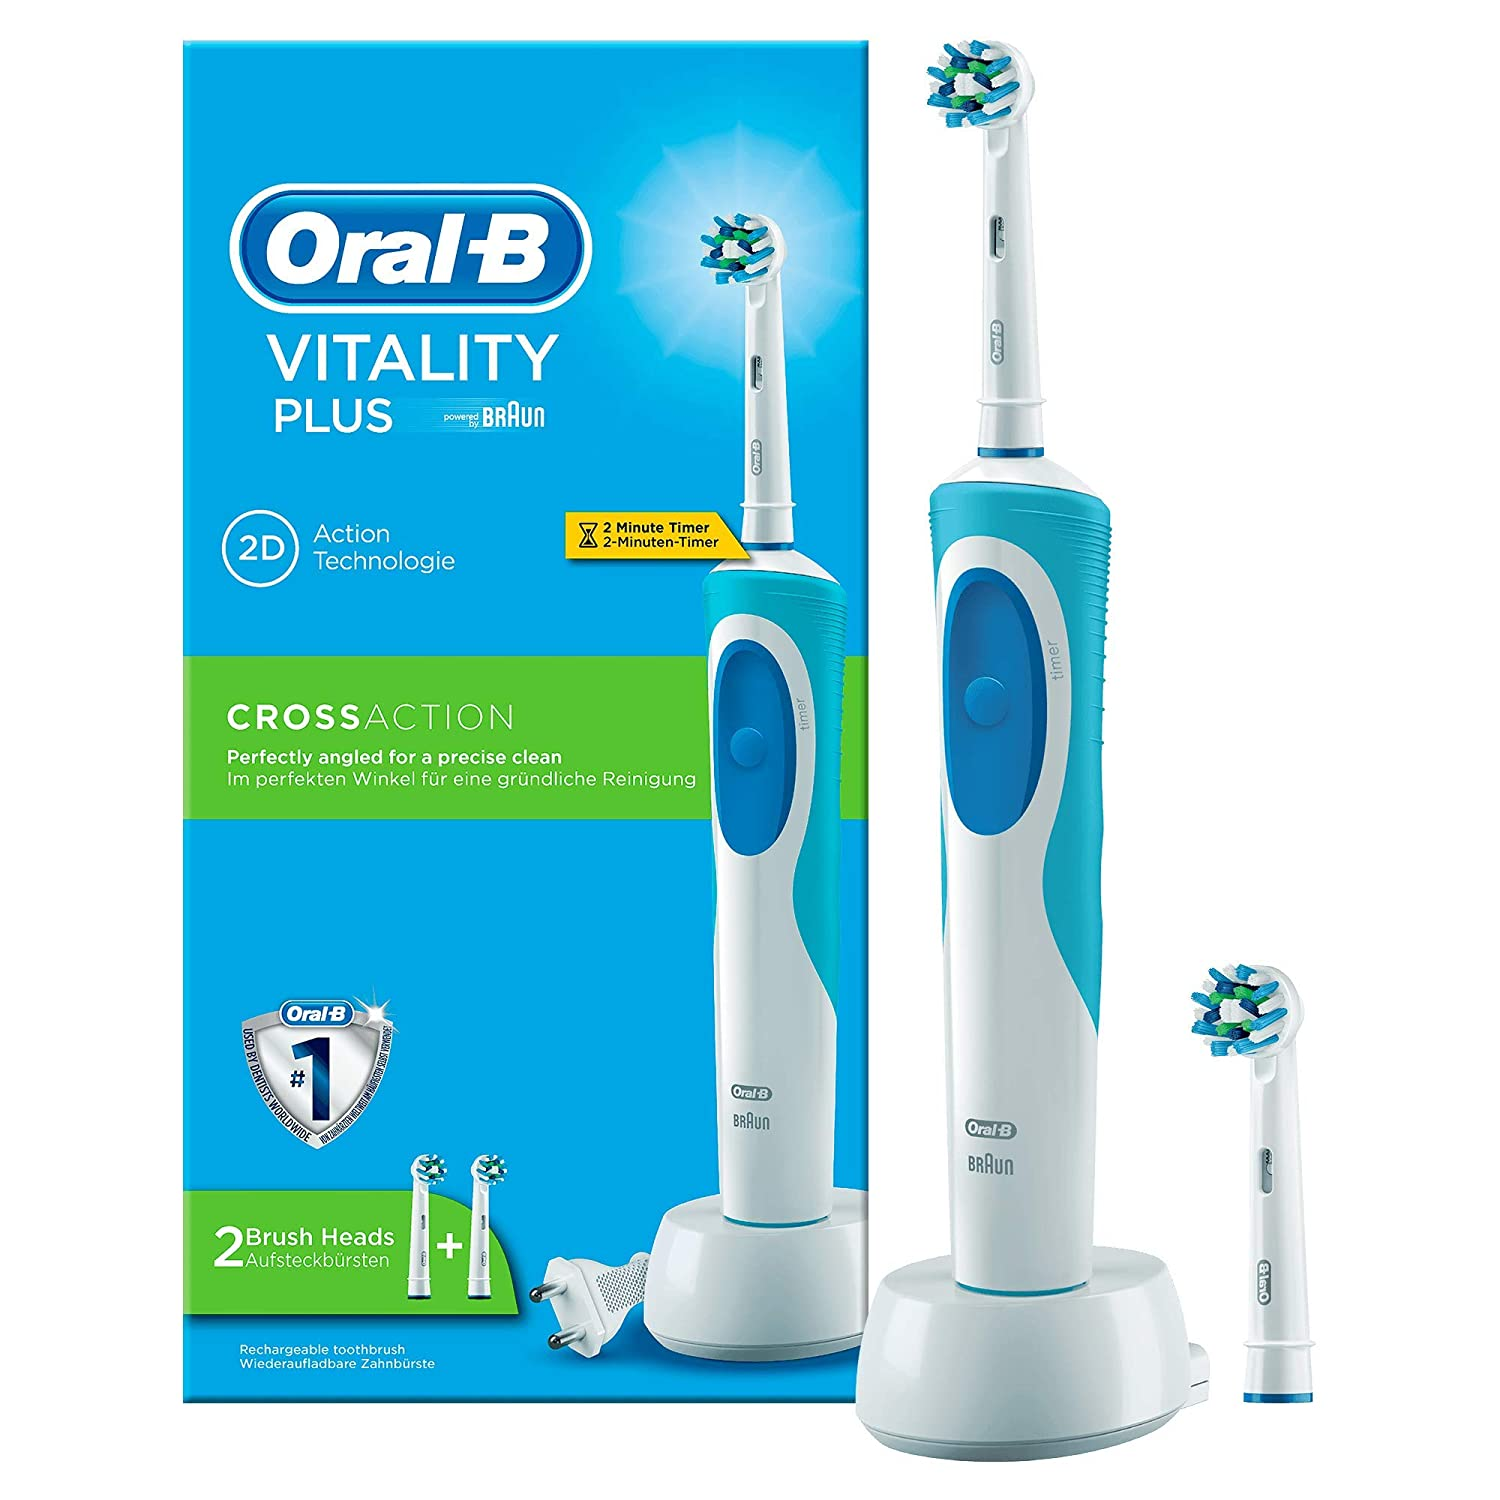 Braun Oral-B Vitality Crossaction Electric Toothbrush, 220 Volts 610119